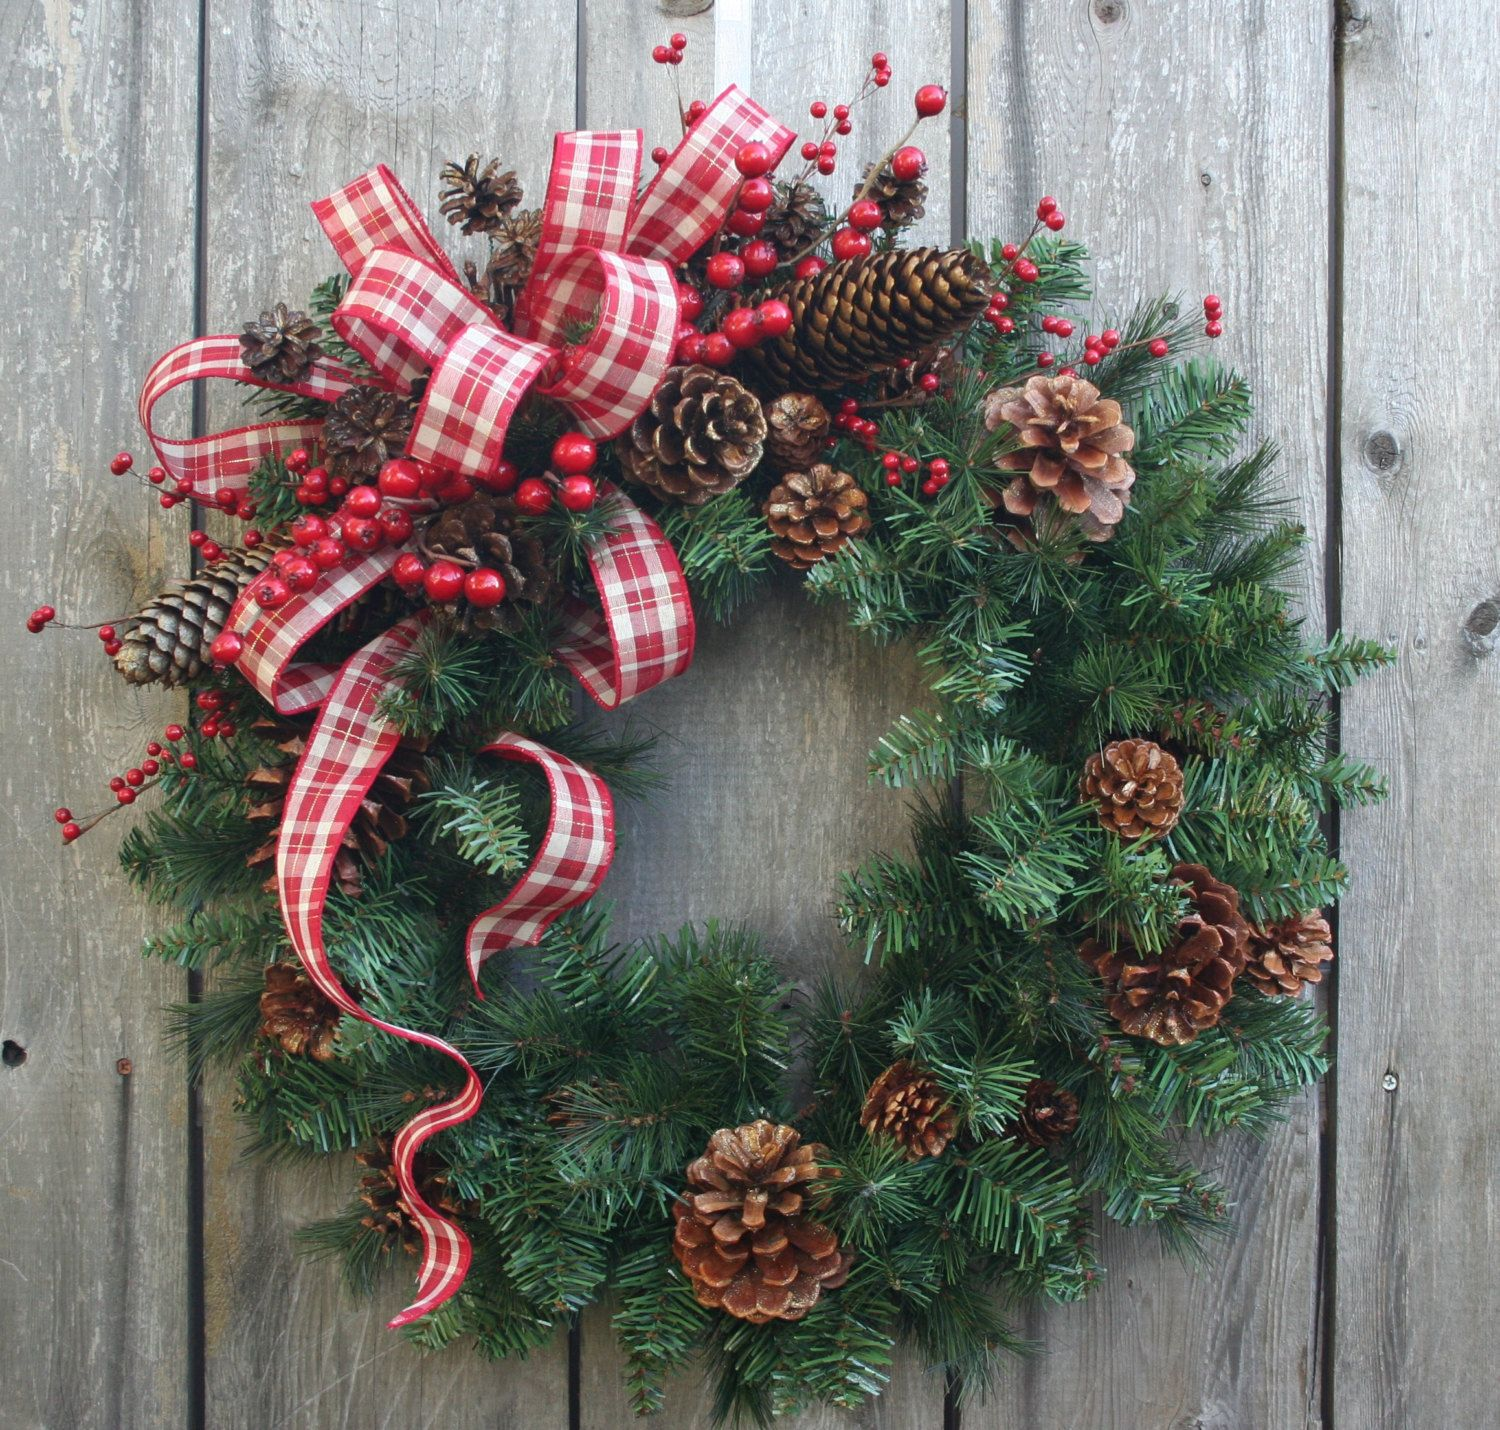 Rustic Country Faux Evergreen Christmas Wreath Decorated With Lovely Red And Ivor Christmas Wreaths Diy Christmas Decorations Wreaths Christmas Wreaths To Make